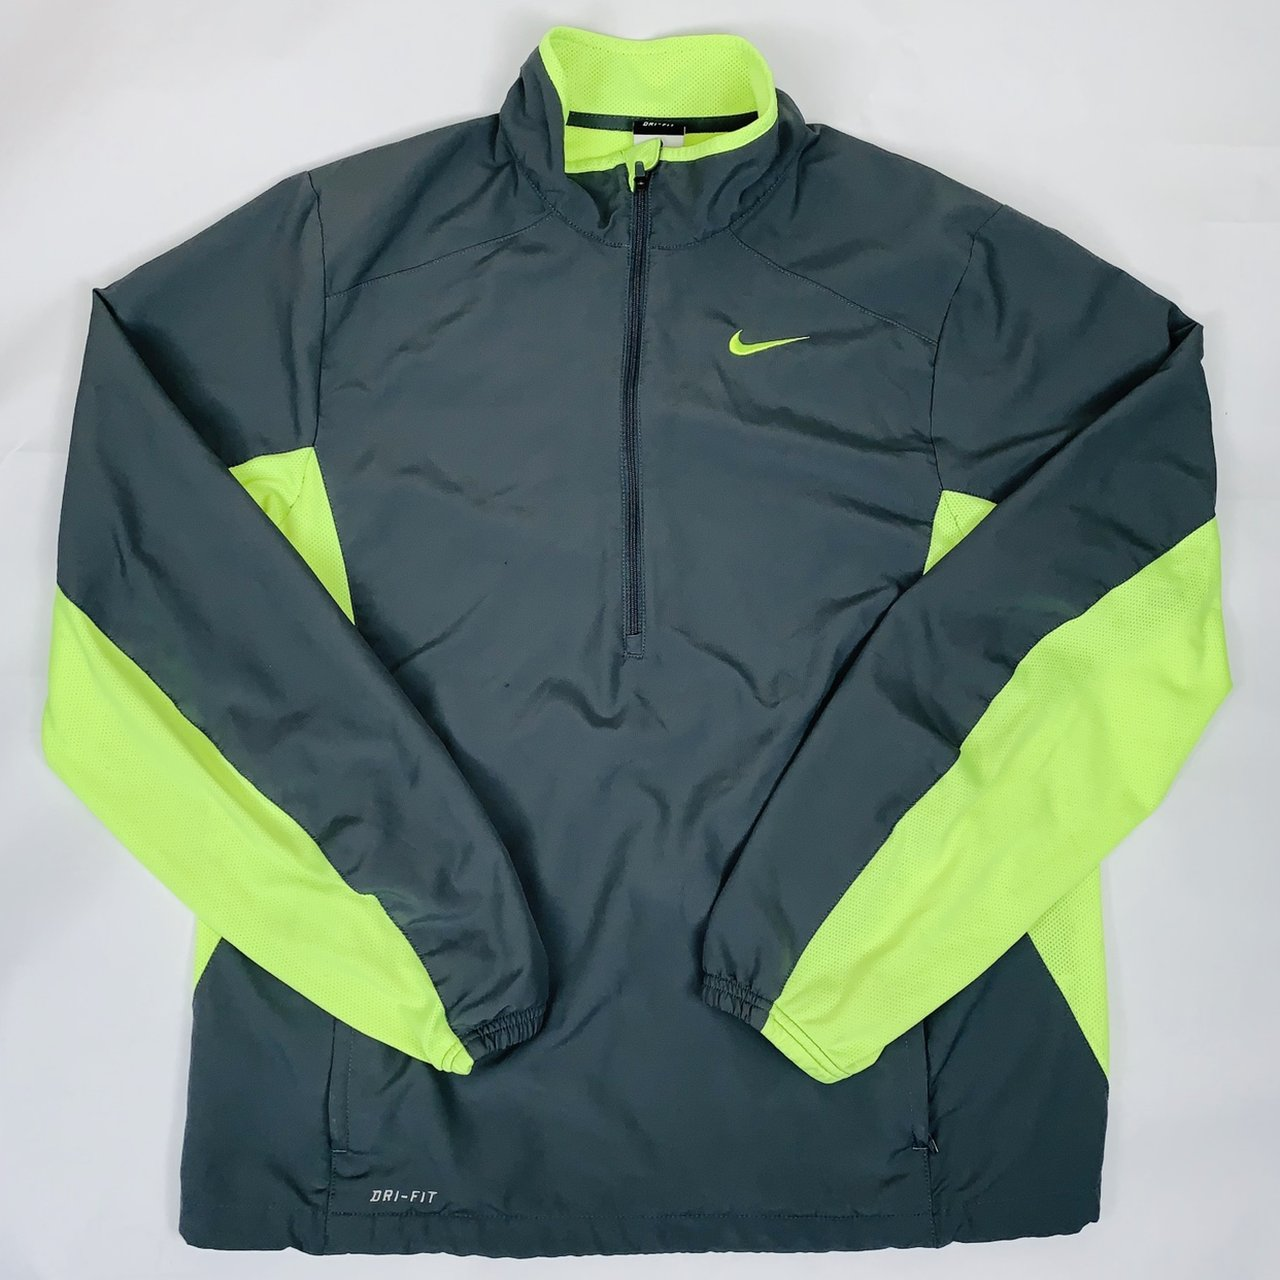 NIKE M Medium Dri-Fit Men s Half Zip Running Jacket Good - - Depop 0bb5b0709